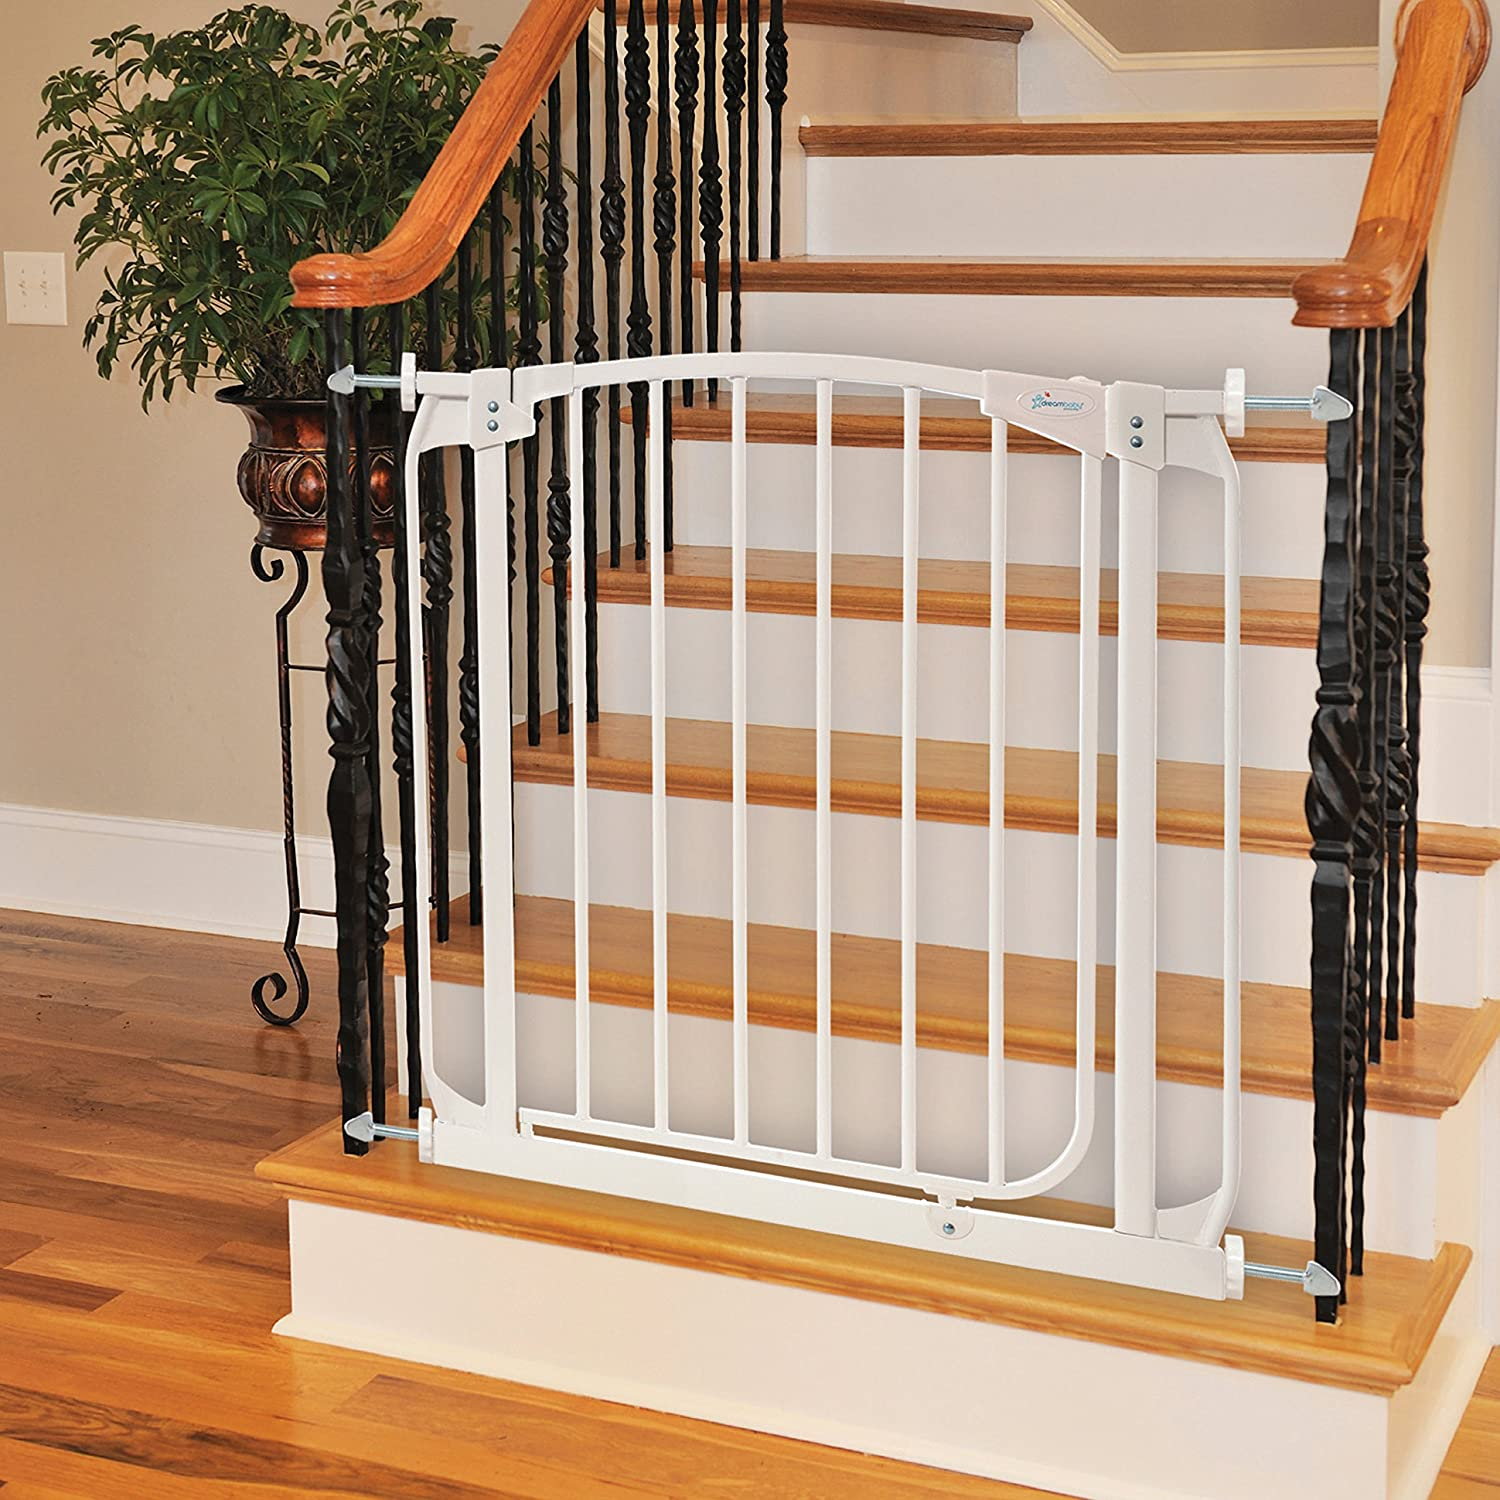 Amazon.com : Dreambaby Banister Gate Adaptors, Silver : Indoor Safety Gates  : Baby